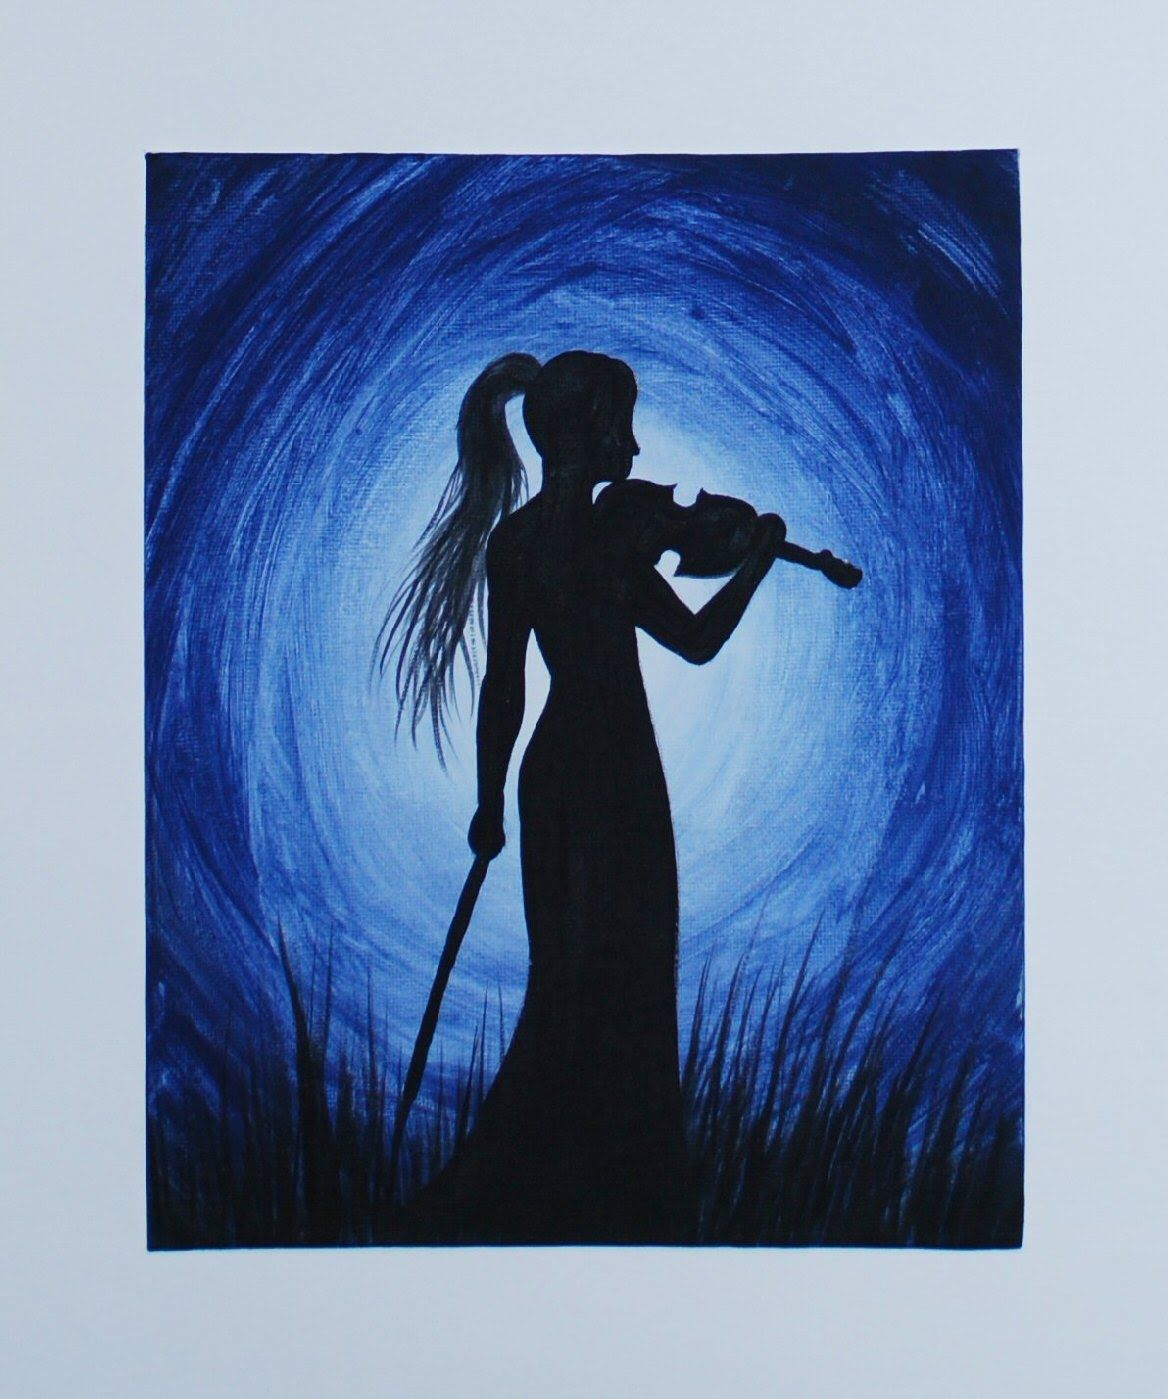 Acrylic Silhouette Painting On Canvas Board In This Violinist Silhouette Painting I Used Nav Silhouette Painting Music Painting Canvas Acrylic Painting Canvas